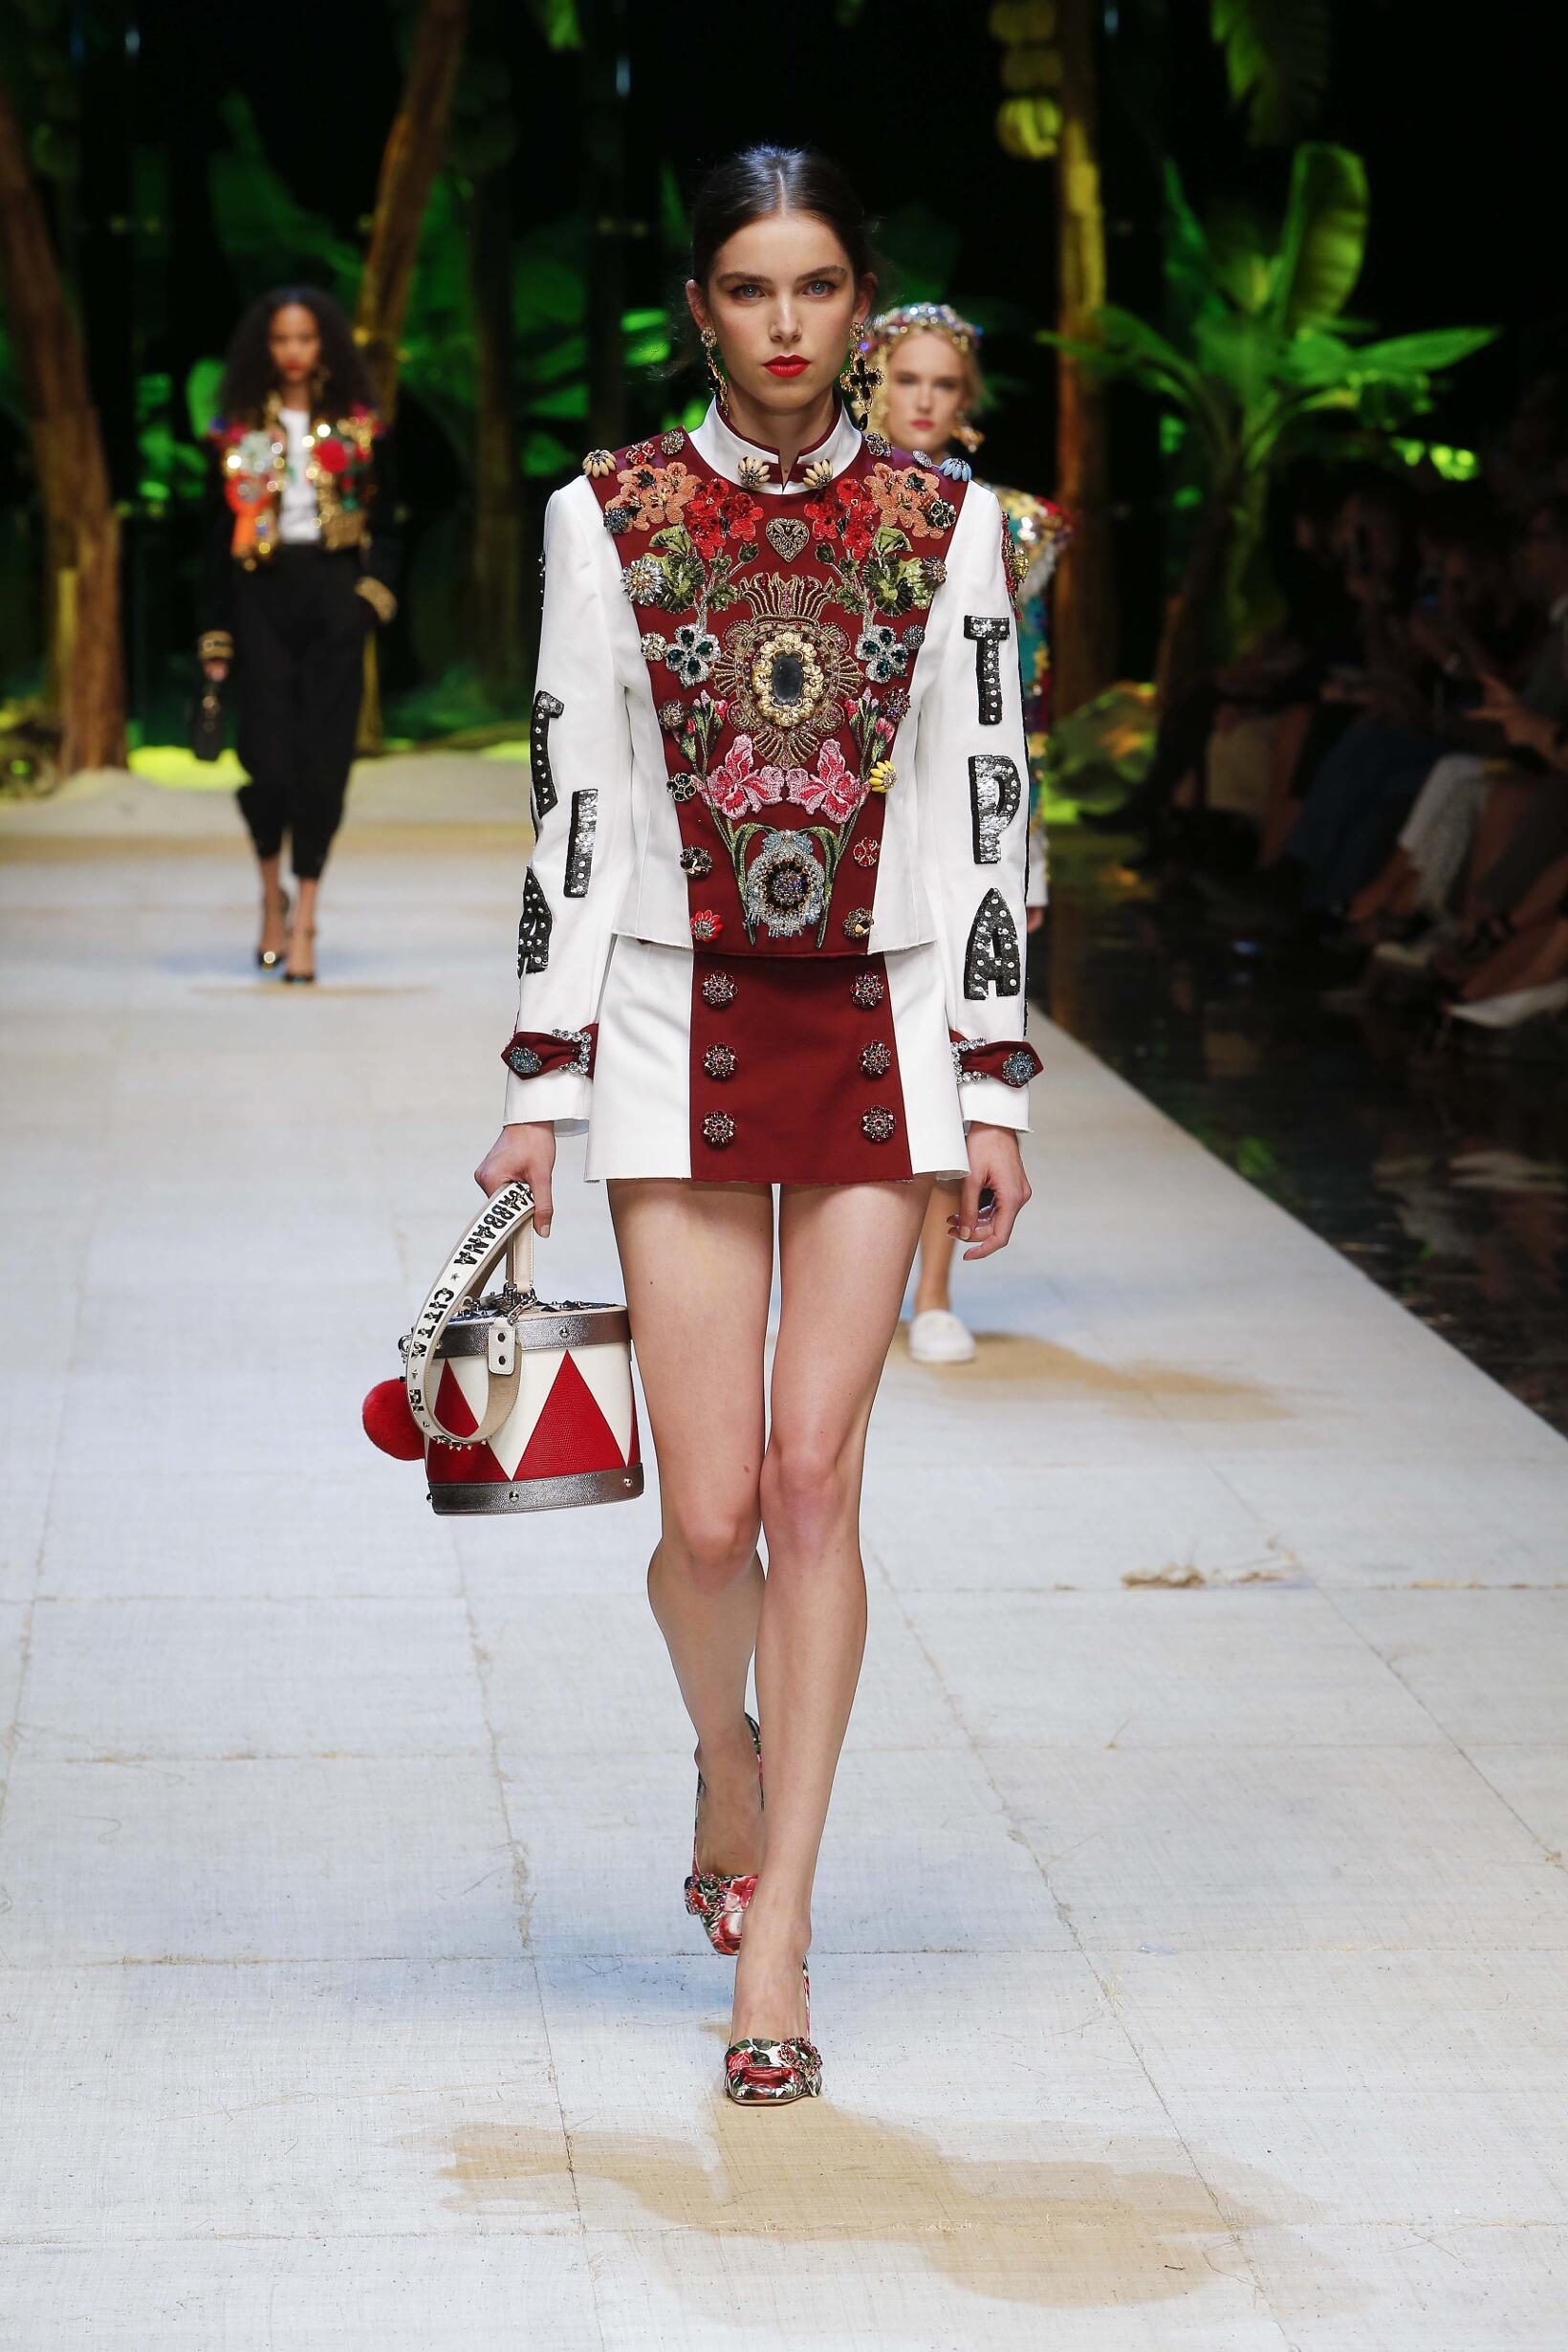 eb16afb3471 DOLCE   GABBANA SPRING SUMMER 2017 WOMEN S COLLECTION